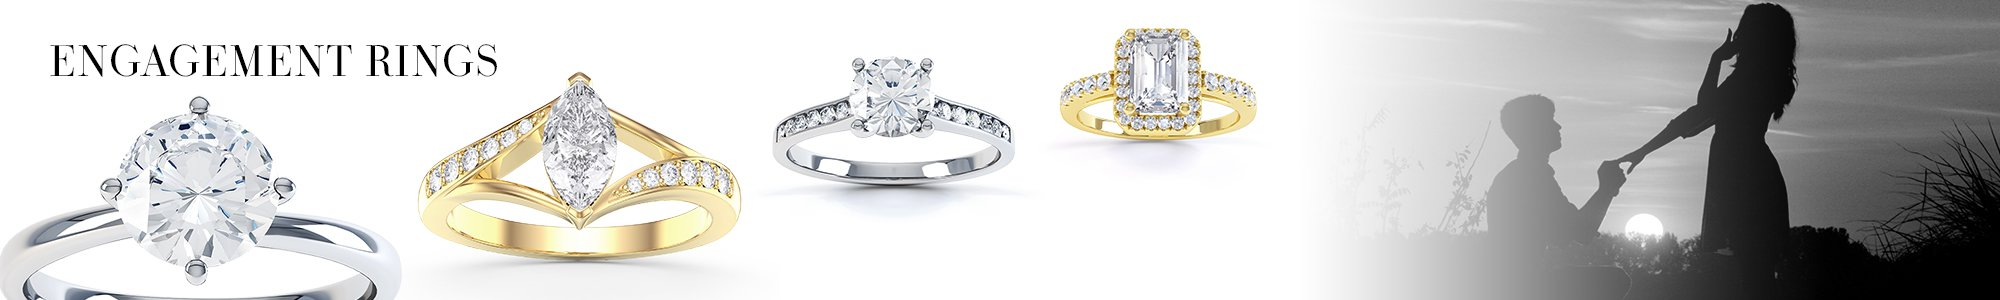 Engagement Rings - From White Sapphire set in Silver to Diamonds set in 18ct Gold or Platinum.